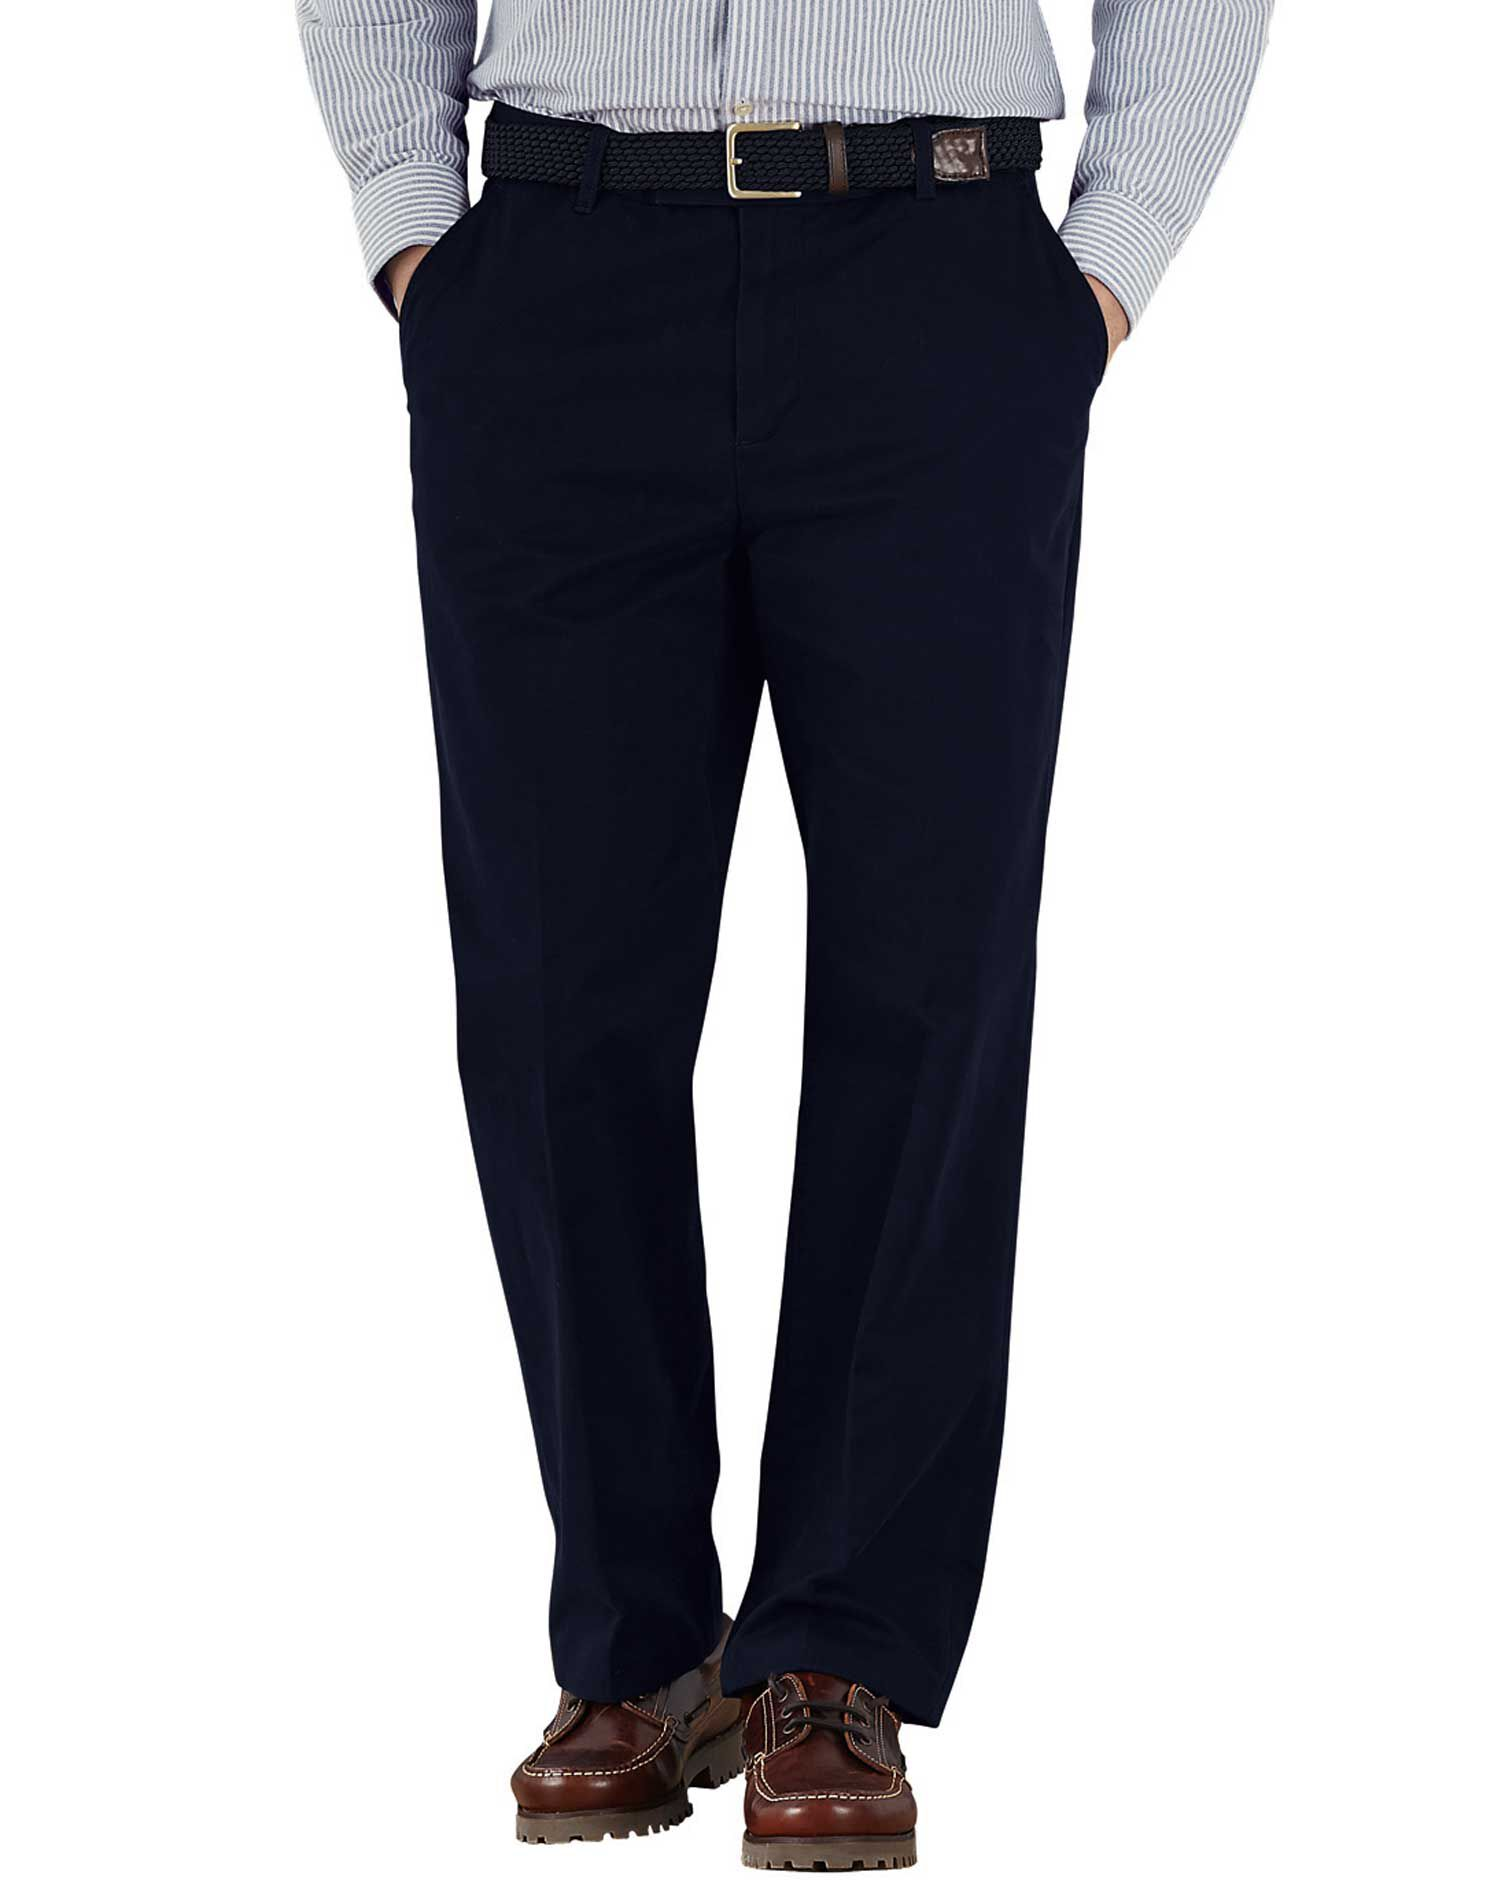 Navy Classic Fit Flat Front Weekend Cotton Chino Trousers Size W40 L29 by Charles Tyrwhitt